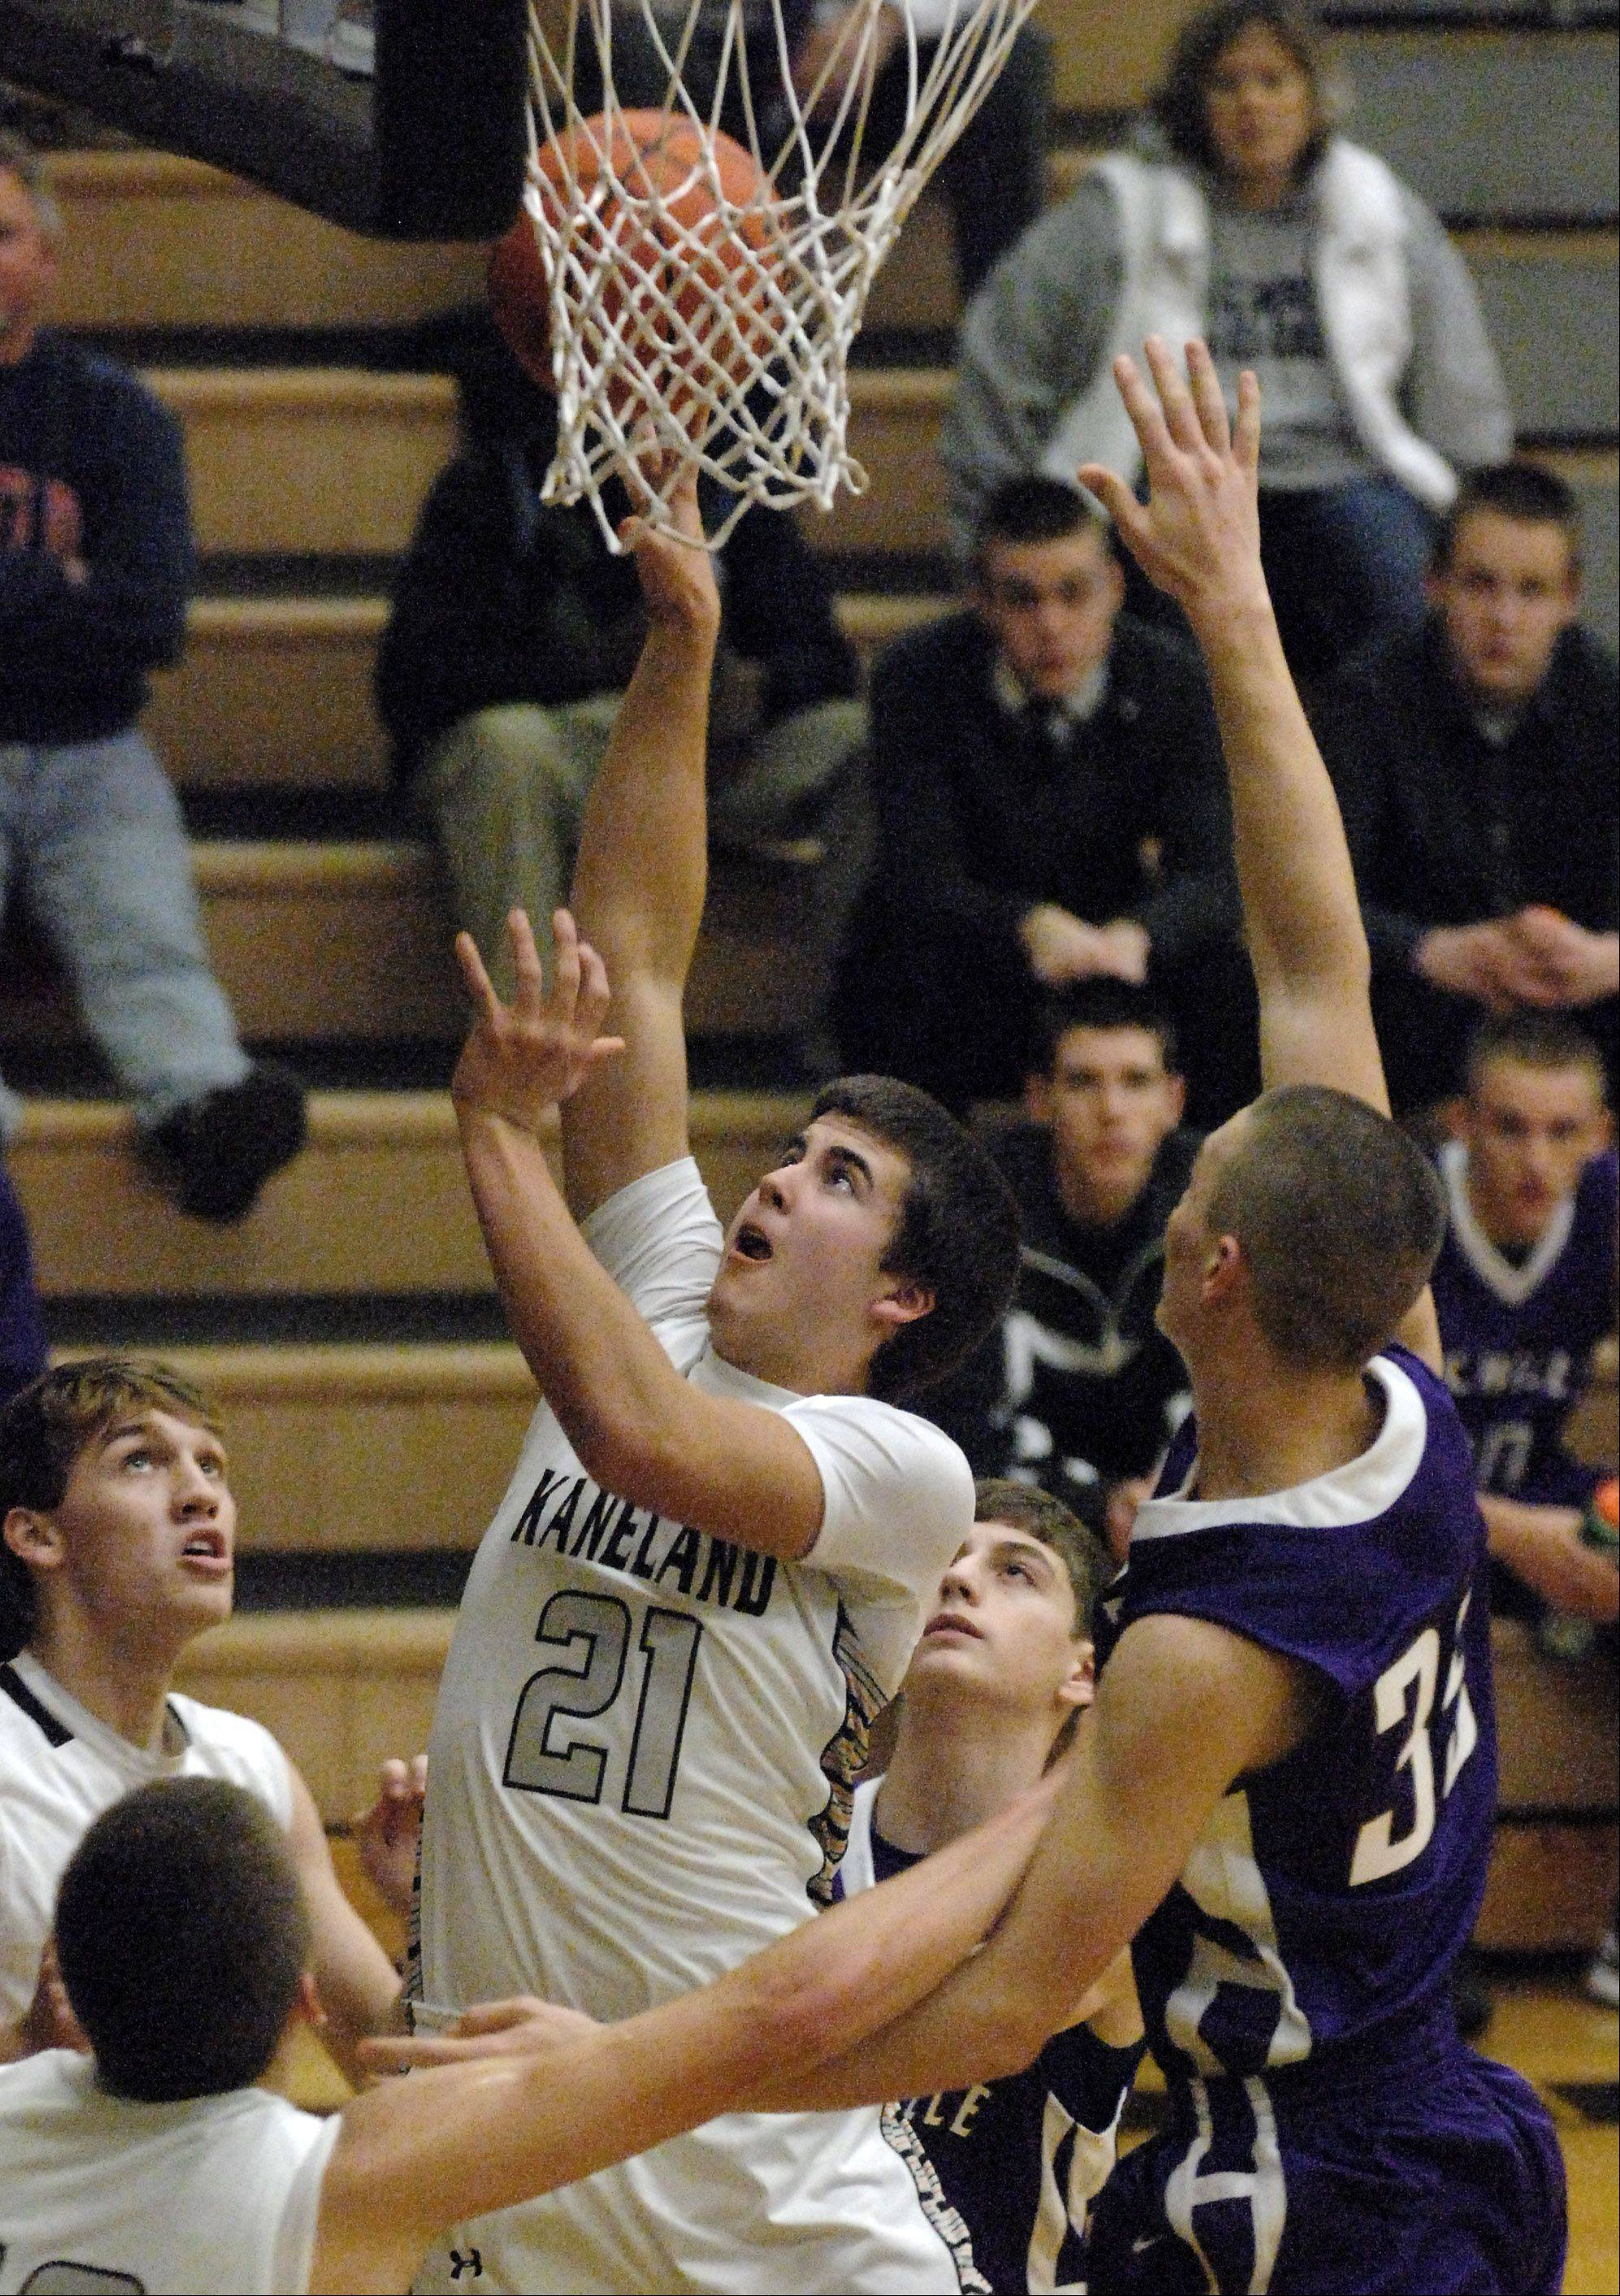 Kaneland's Tom Van Bogaert puts up a shot in the lane against Rochelle.